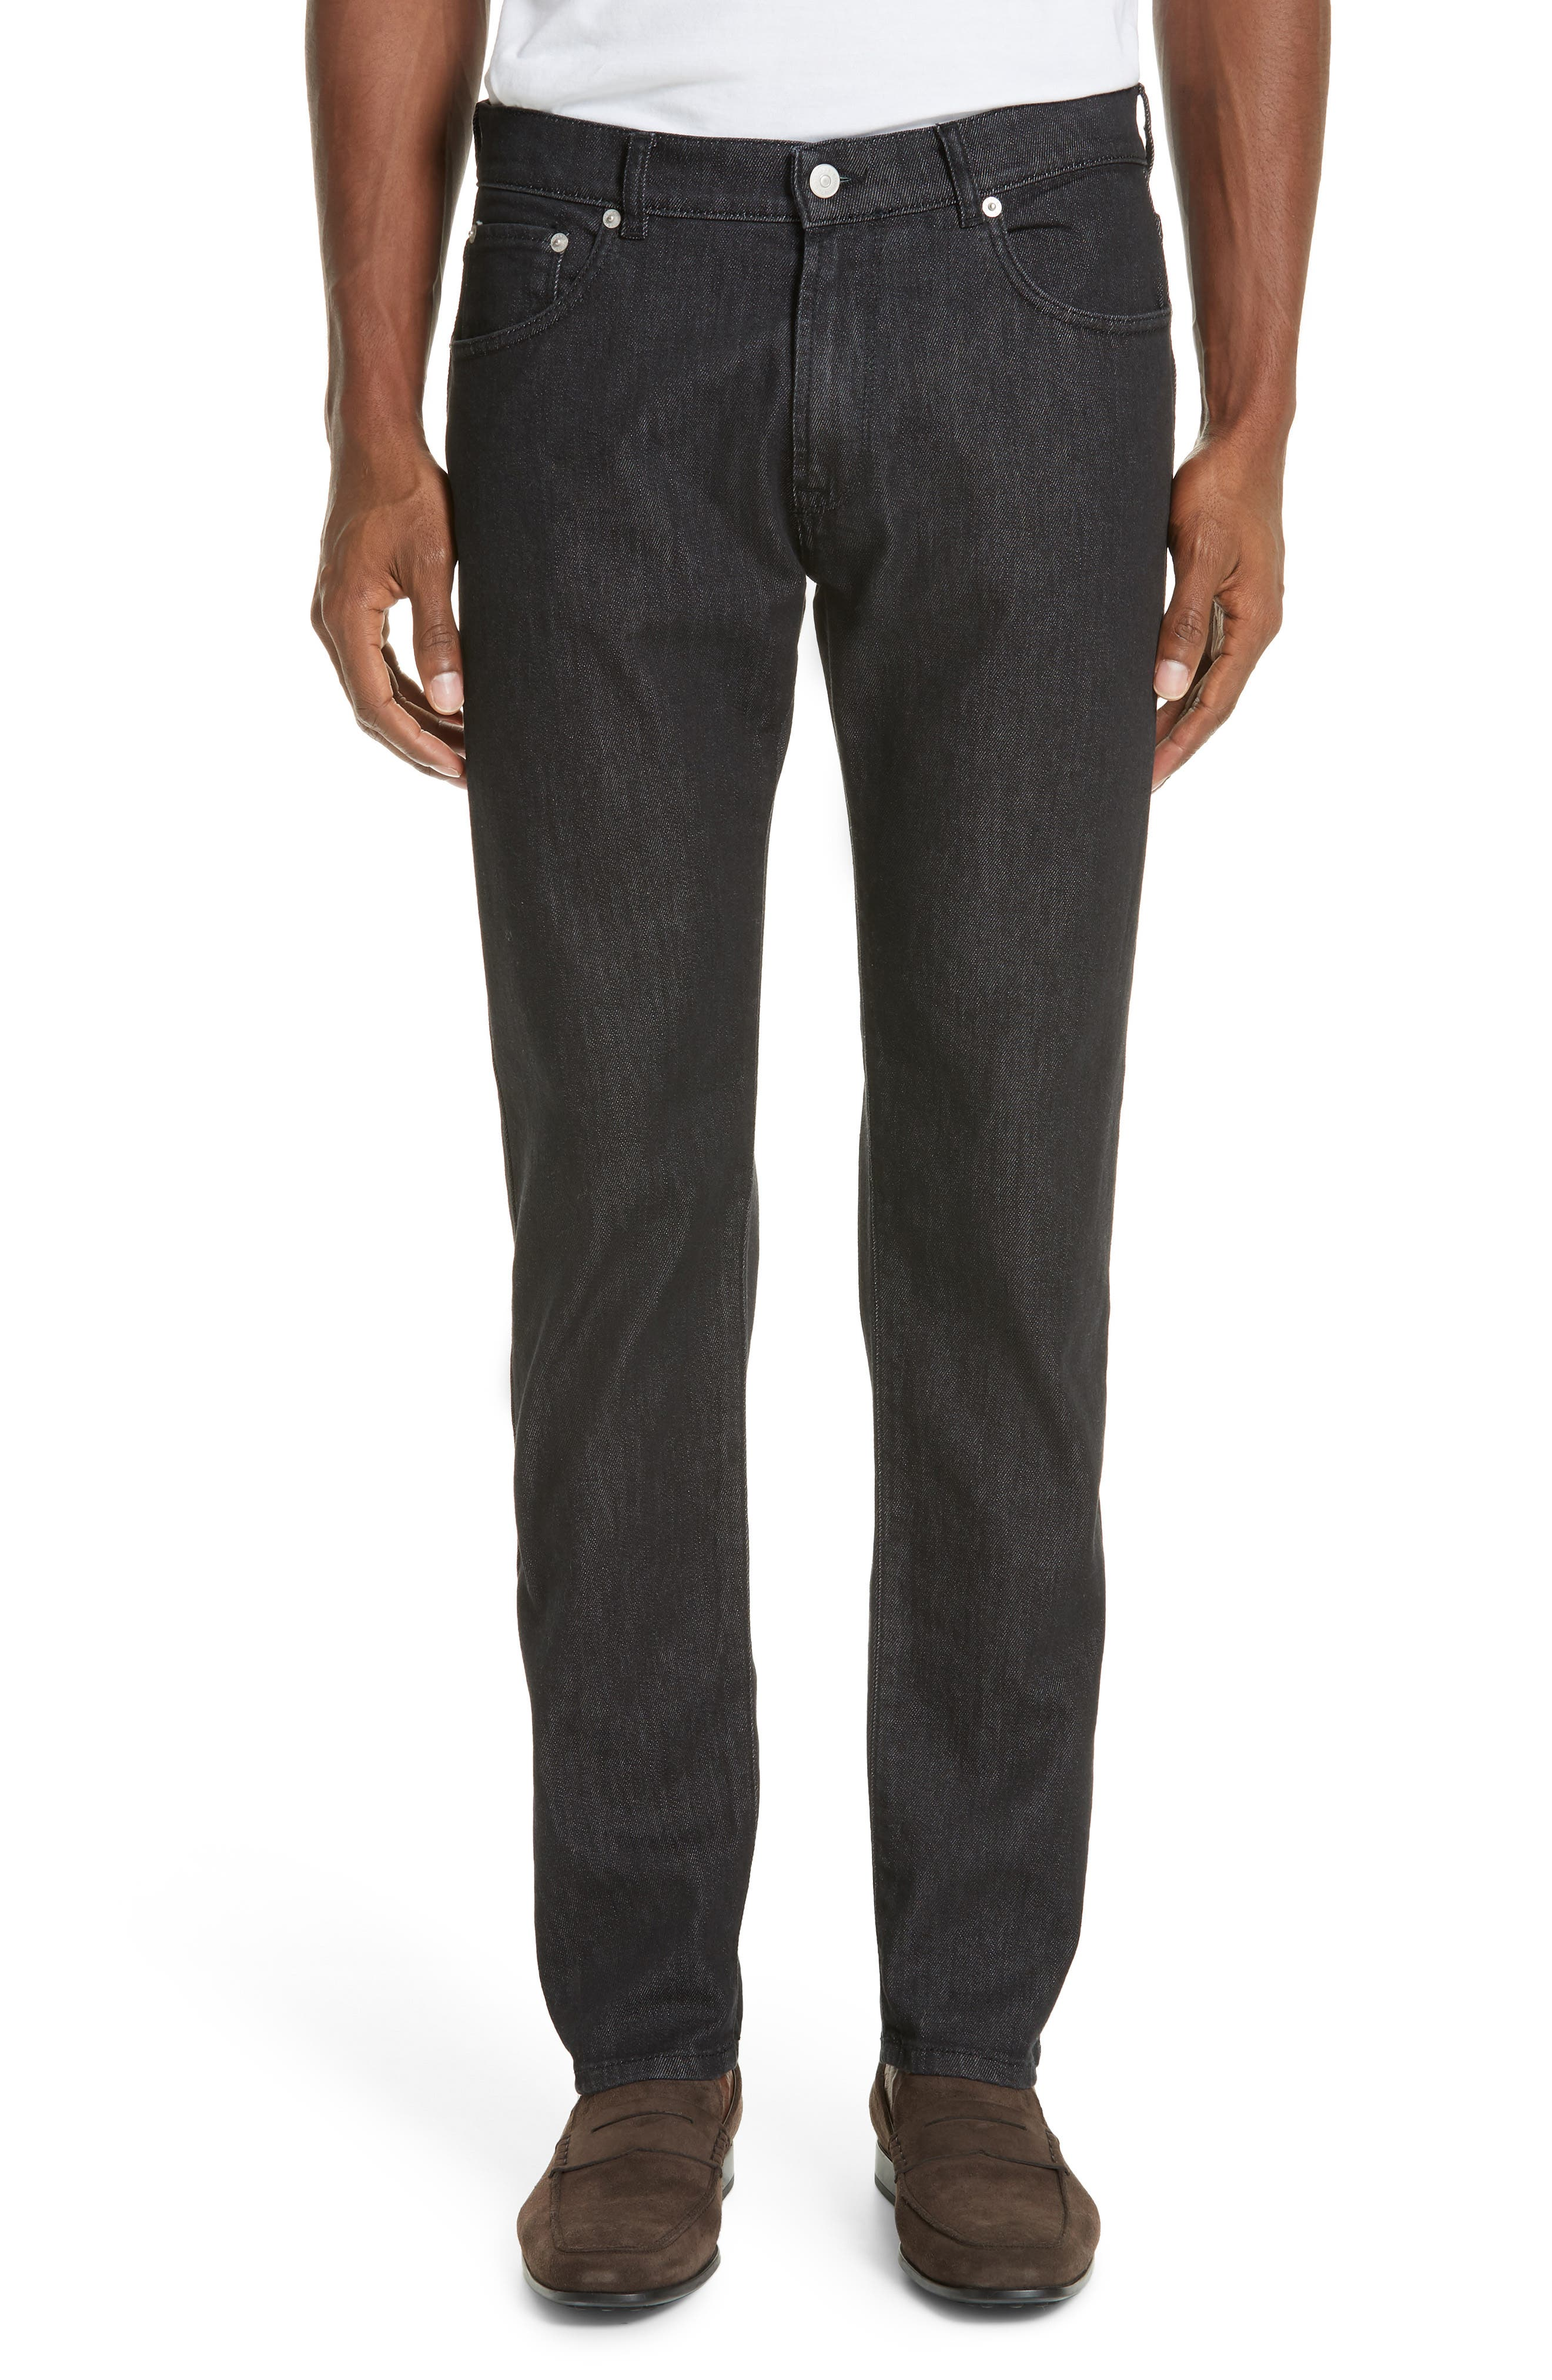 EIDOS Trim Fit Jeans in Black